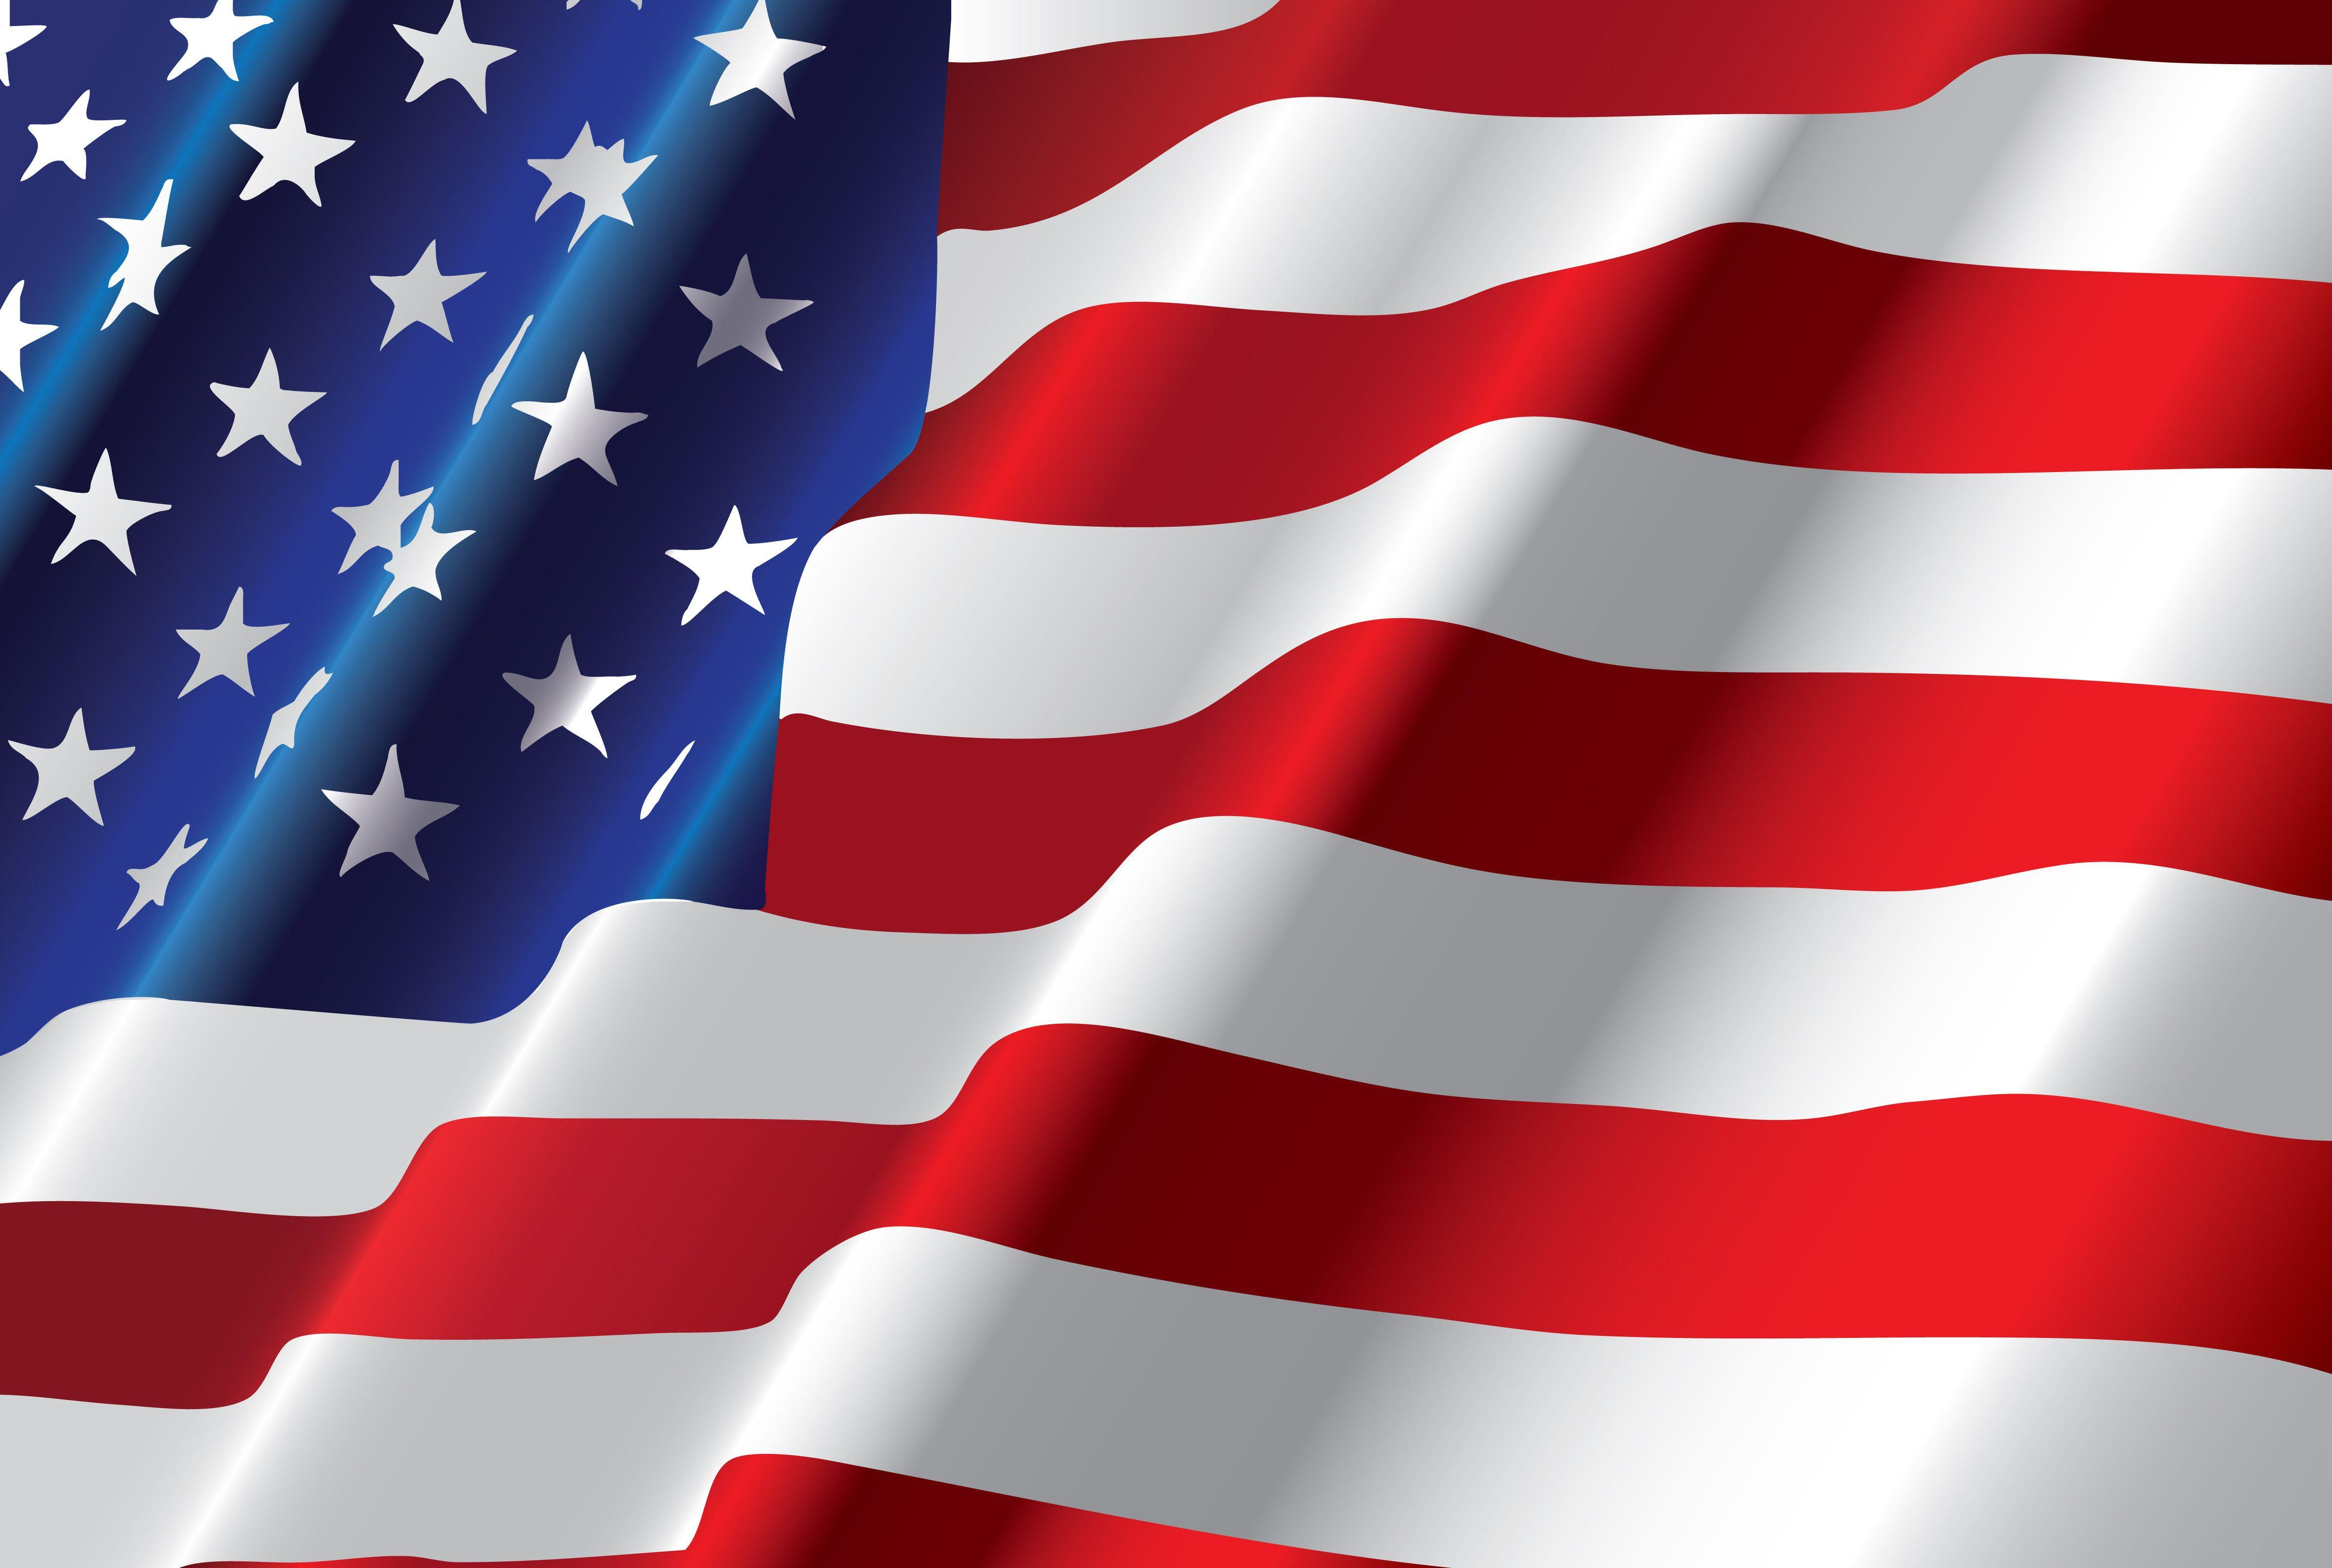 American Flag Wallpapers Widescreen